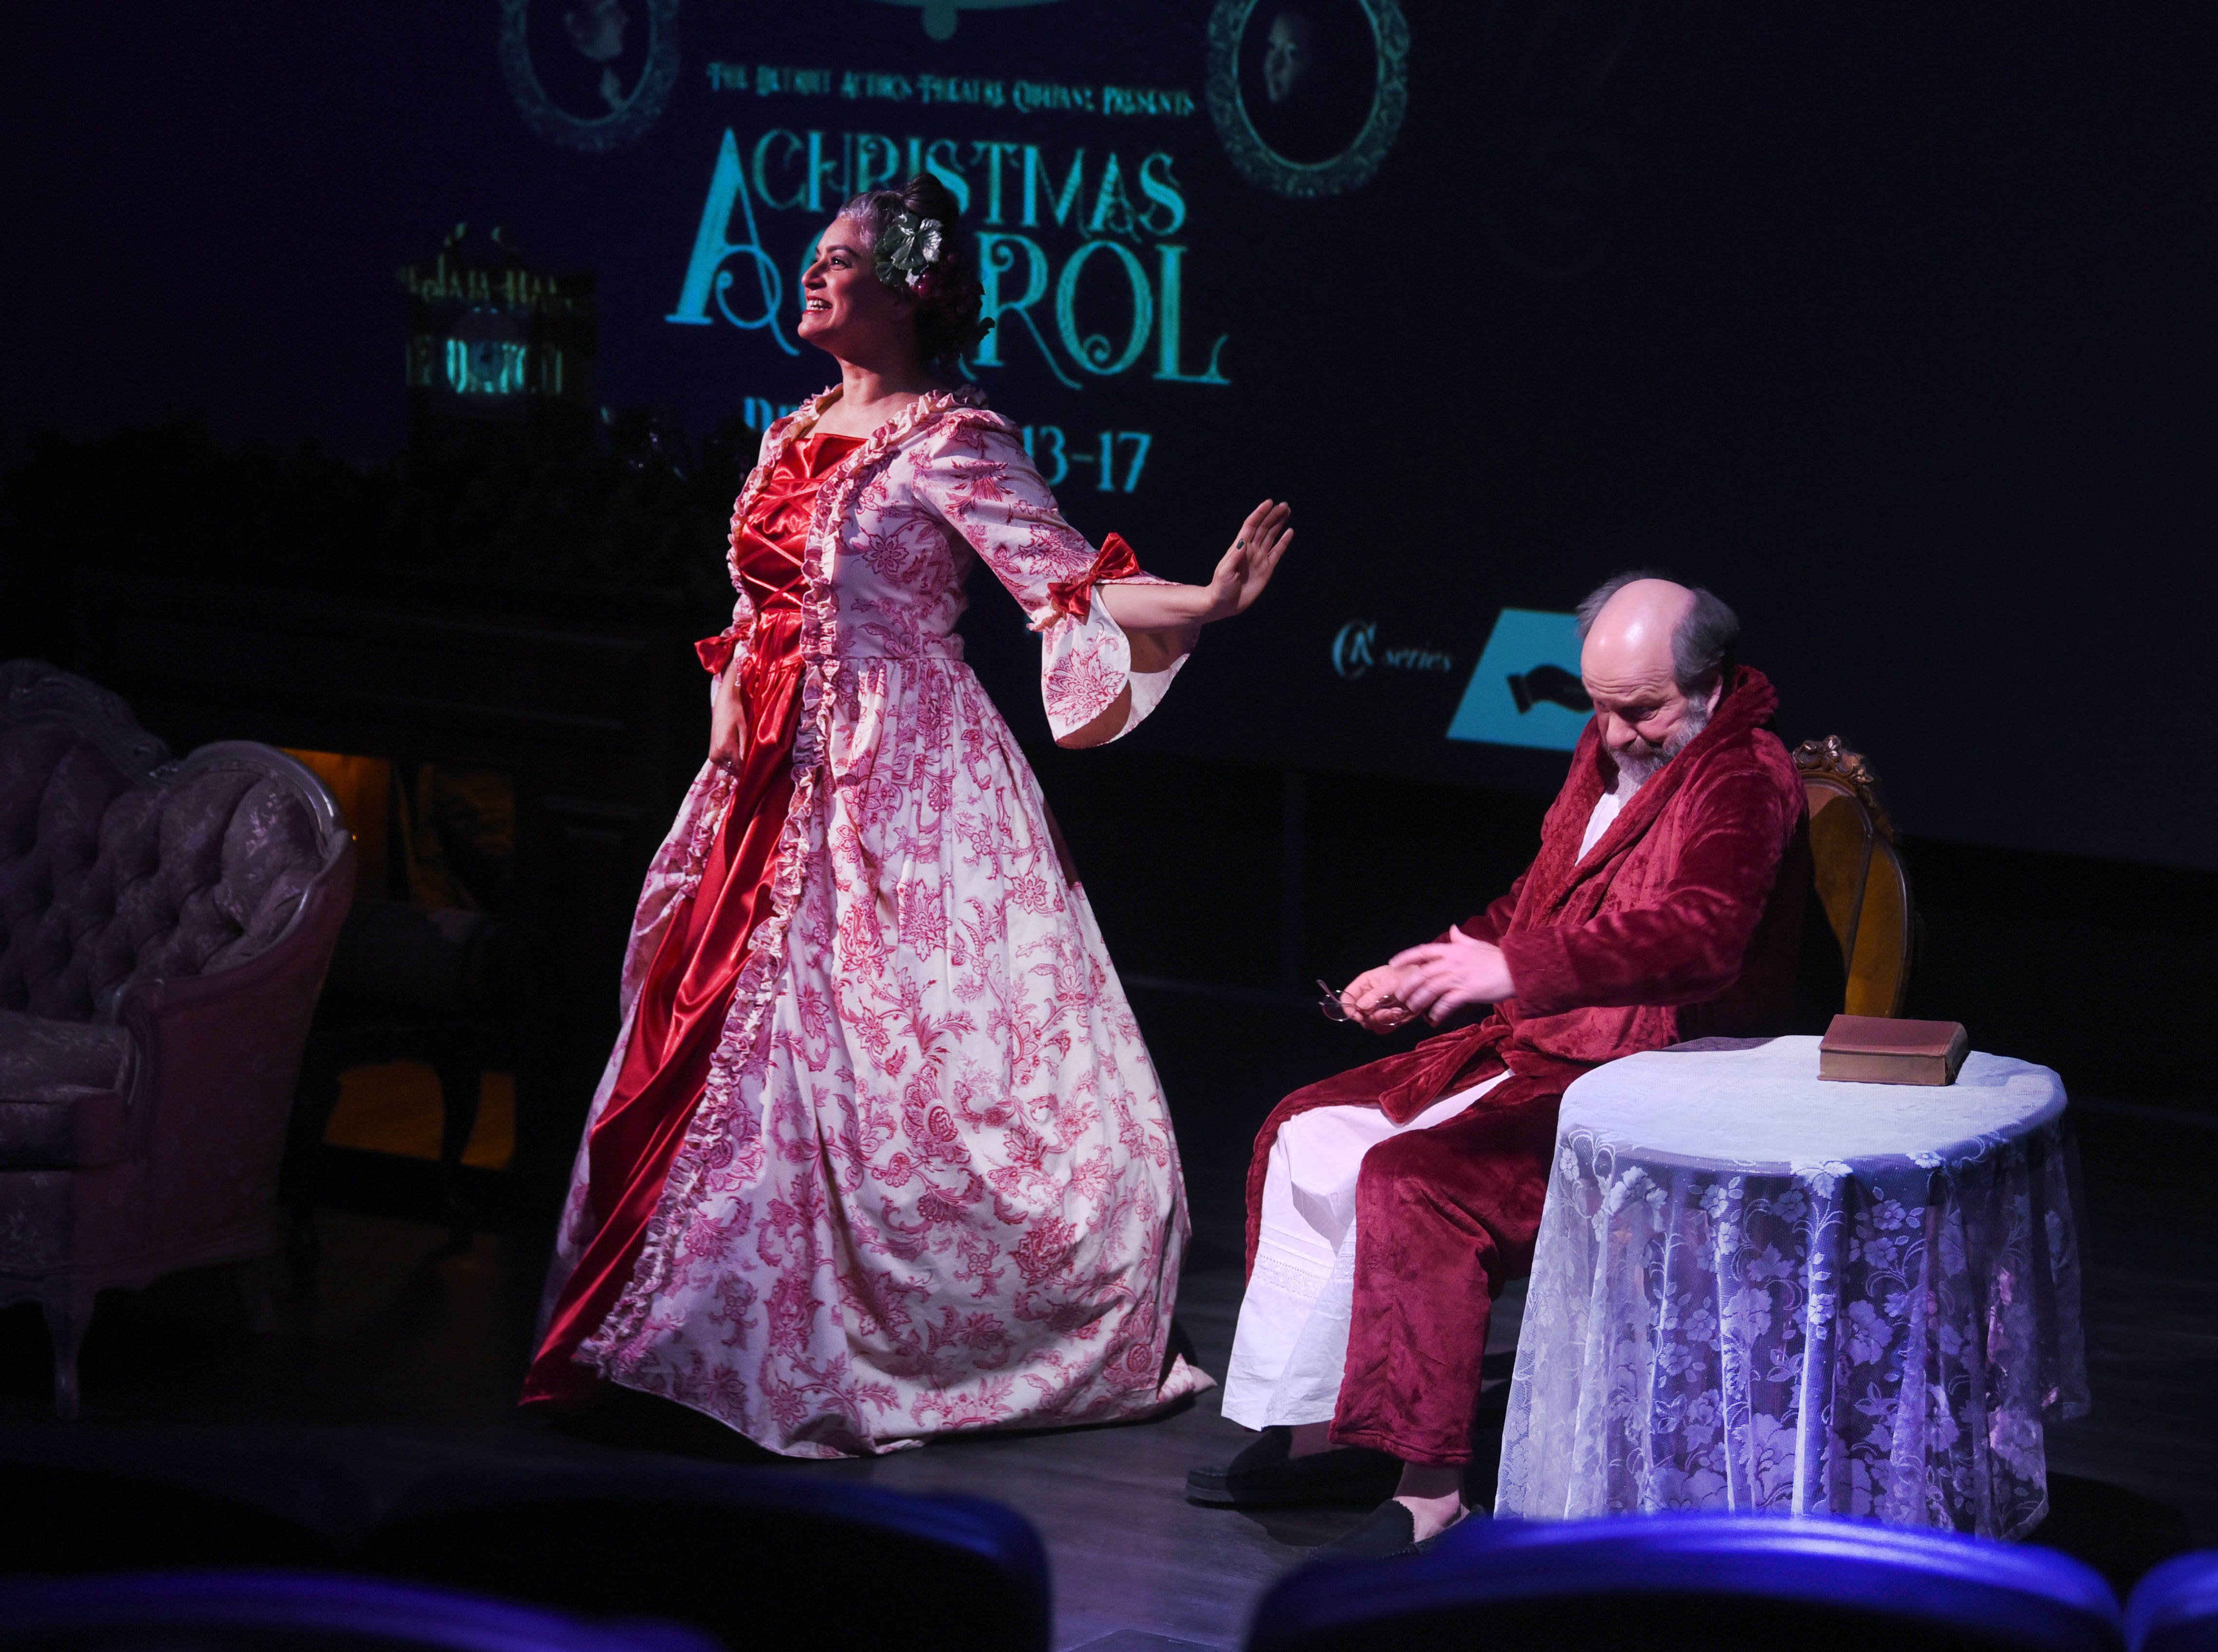 Actors perform a scene from A Christmas Carol at the Michigan Science Center during Noel Night in Detroit on Saturday, December 1, 2018. The production of A Christmas Carol will debut at the Jam Handy Theater in Detroit from December 13-17, 2018